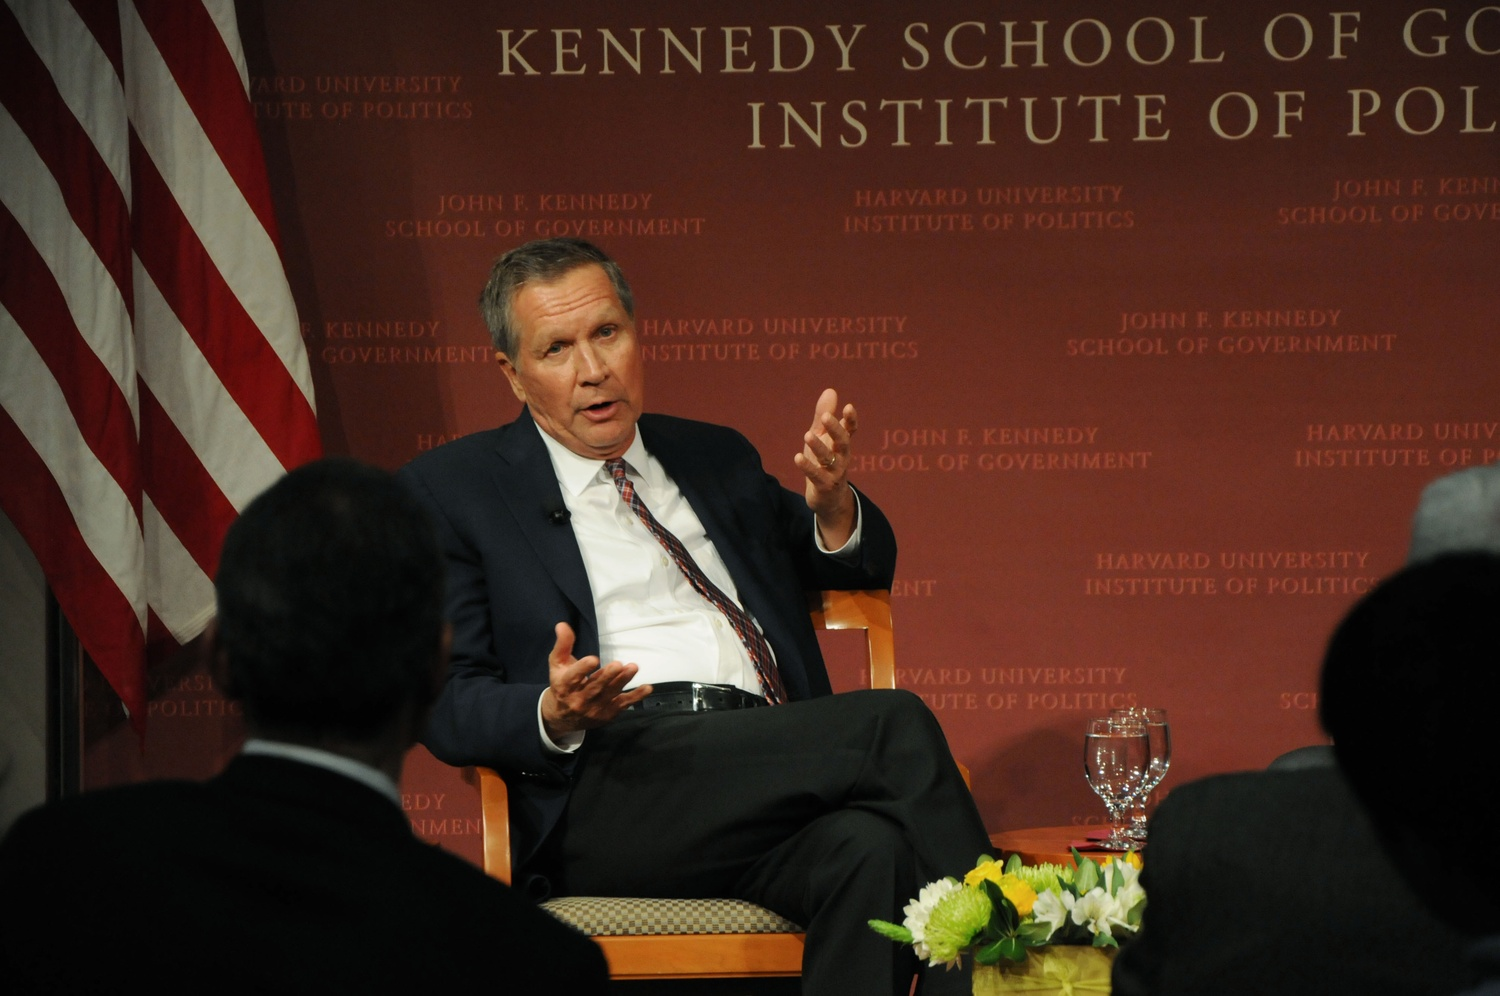 John Kasich, Ohio governor and former presidential candidate, spoke at the Institute of Politics Wednesday. Kasich is the author of Two Paths: America Divided or United.